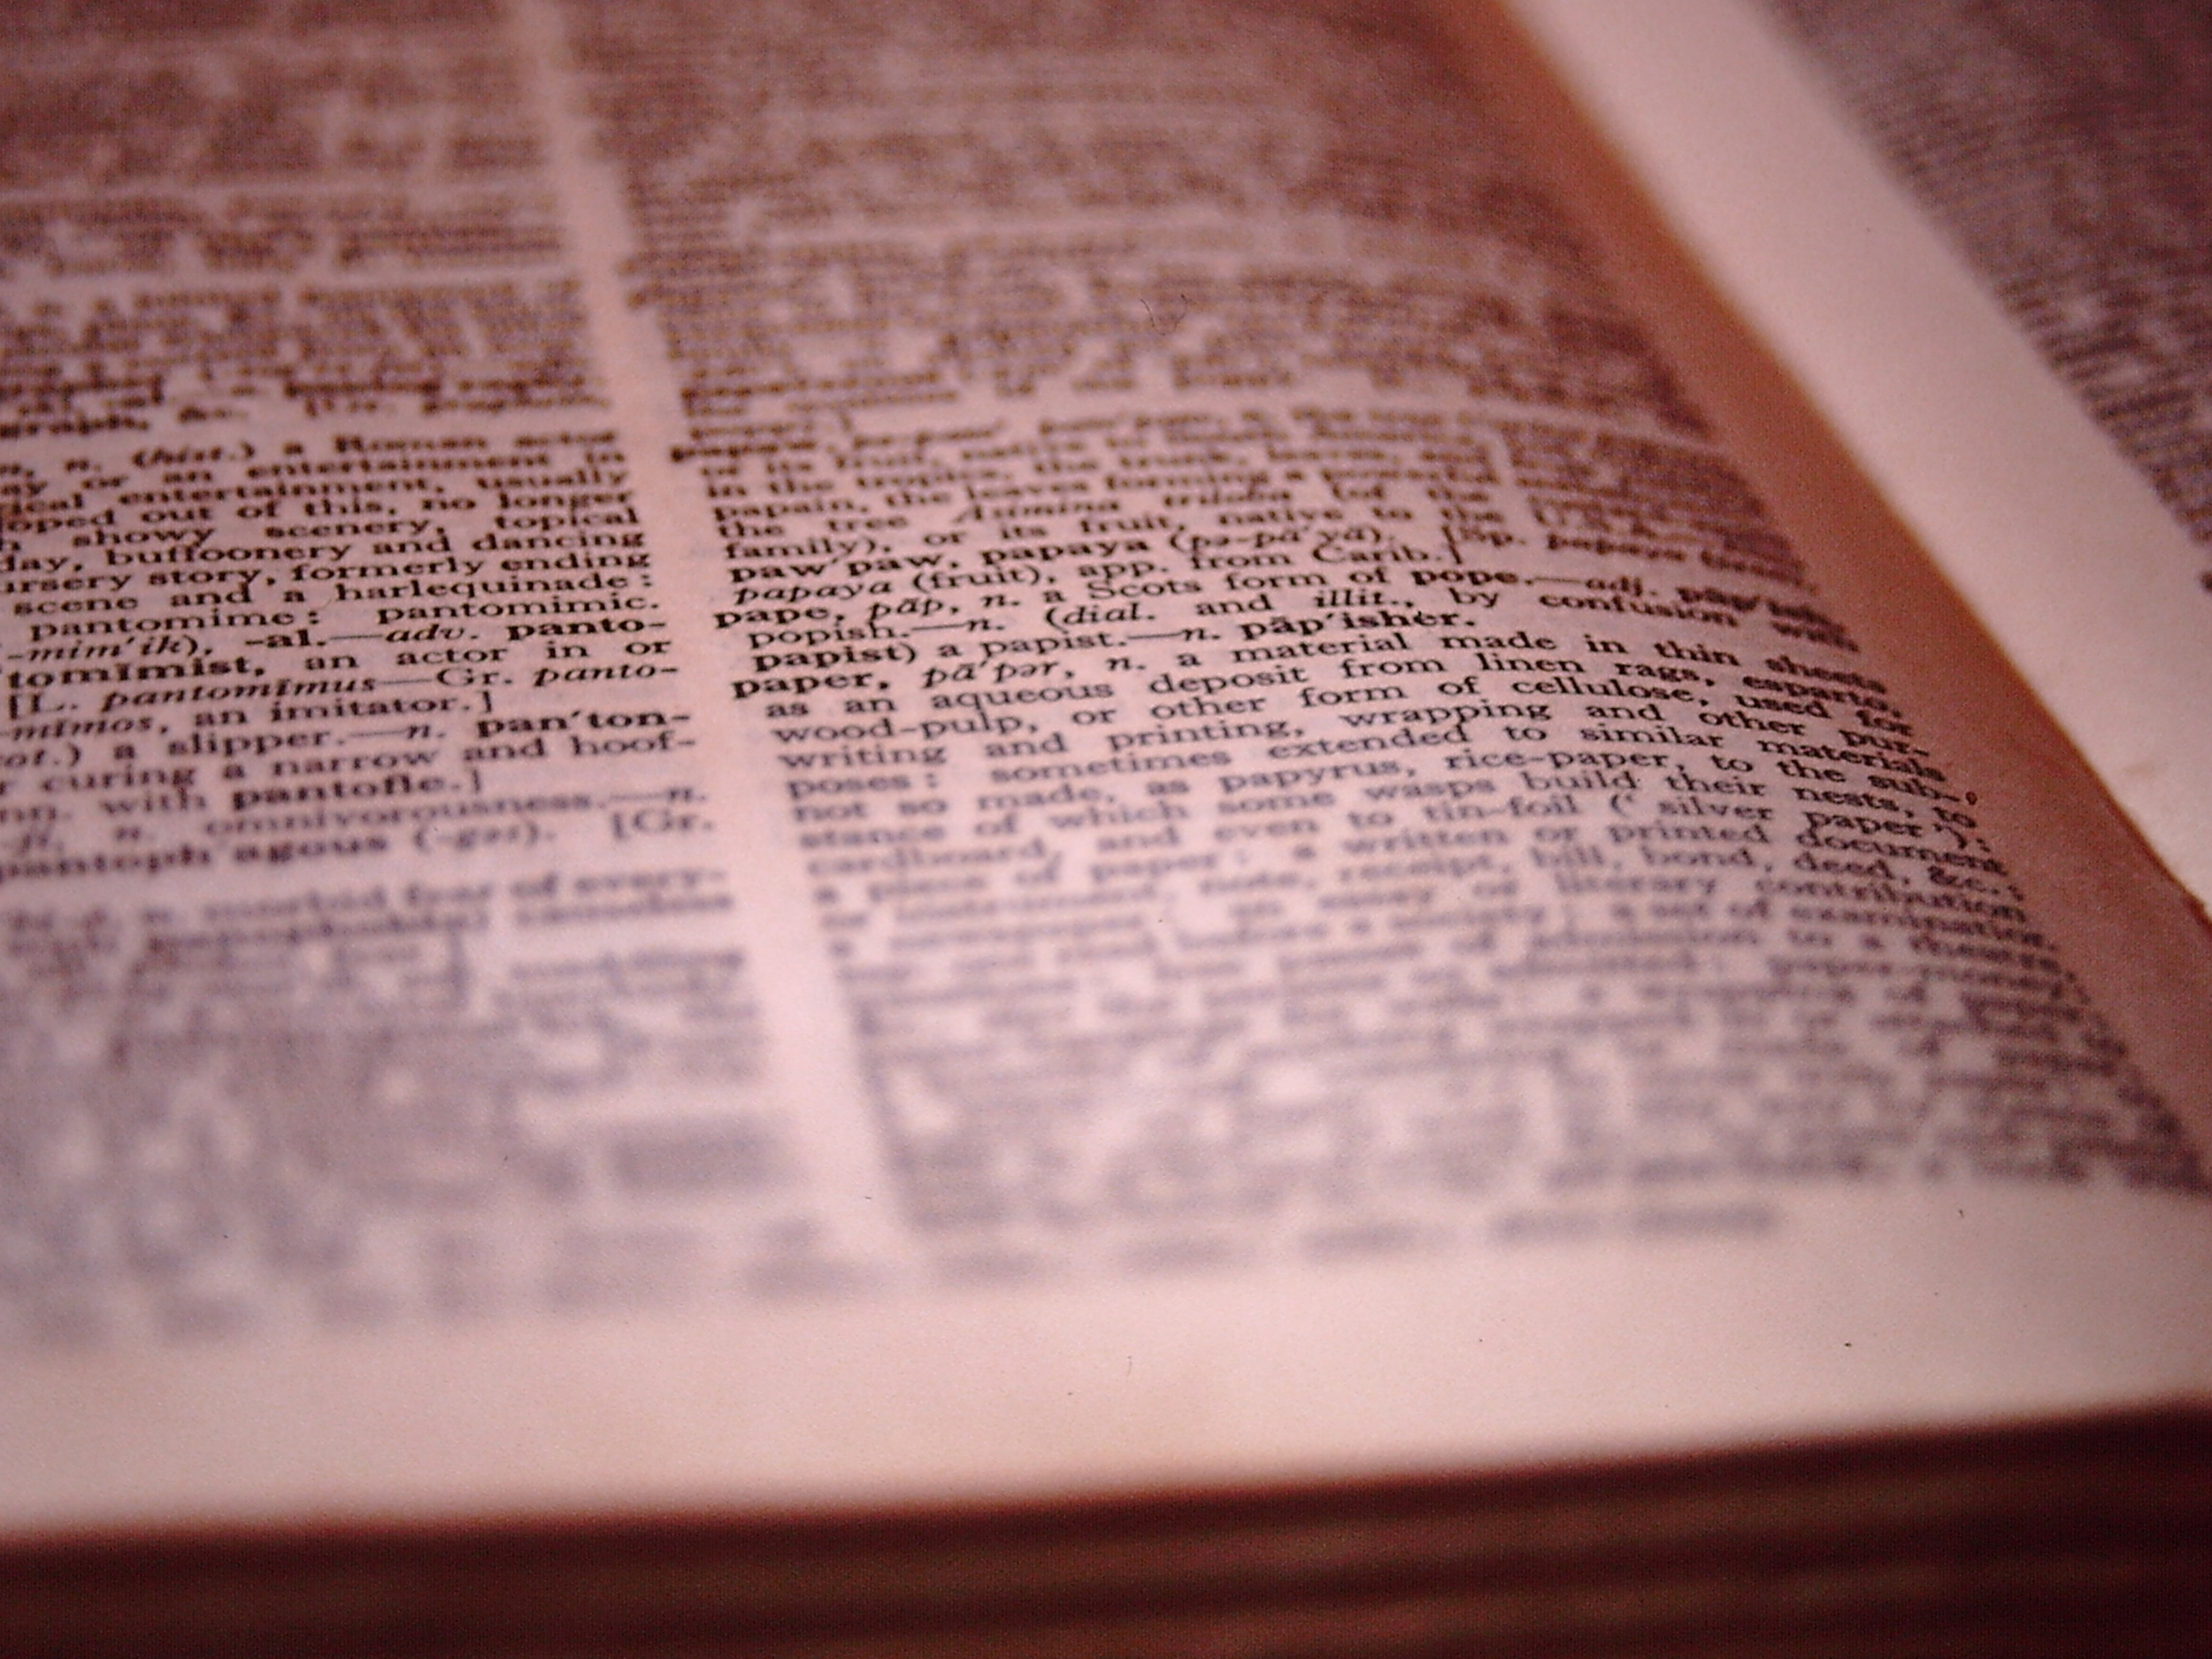 Dictionary open to page highlighting word 'paper'.